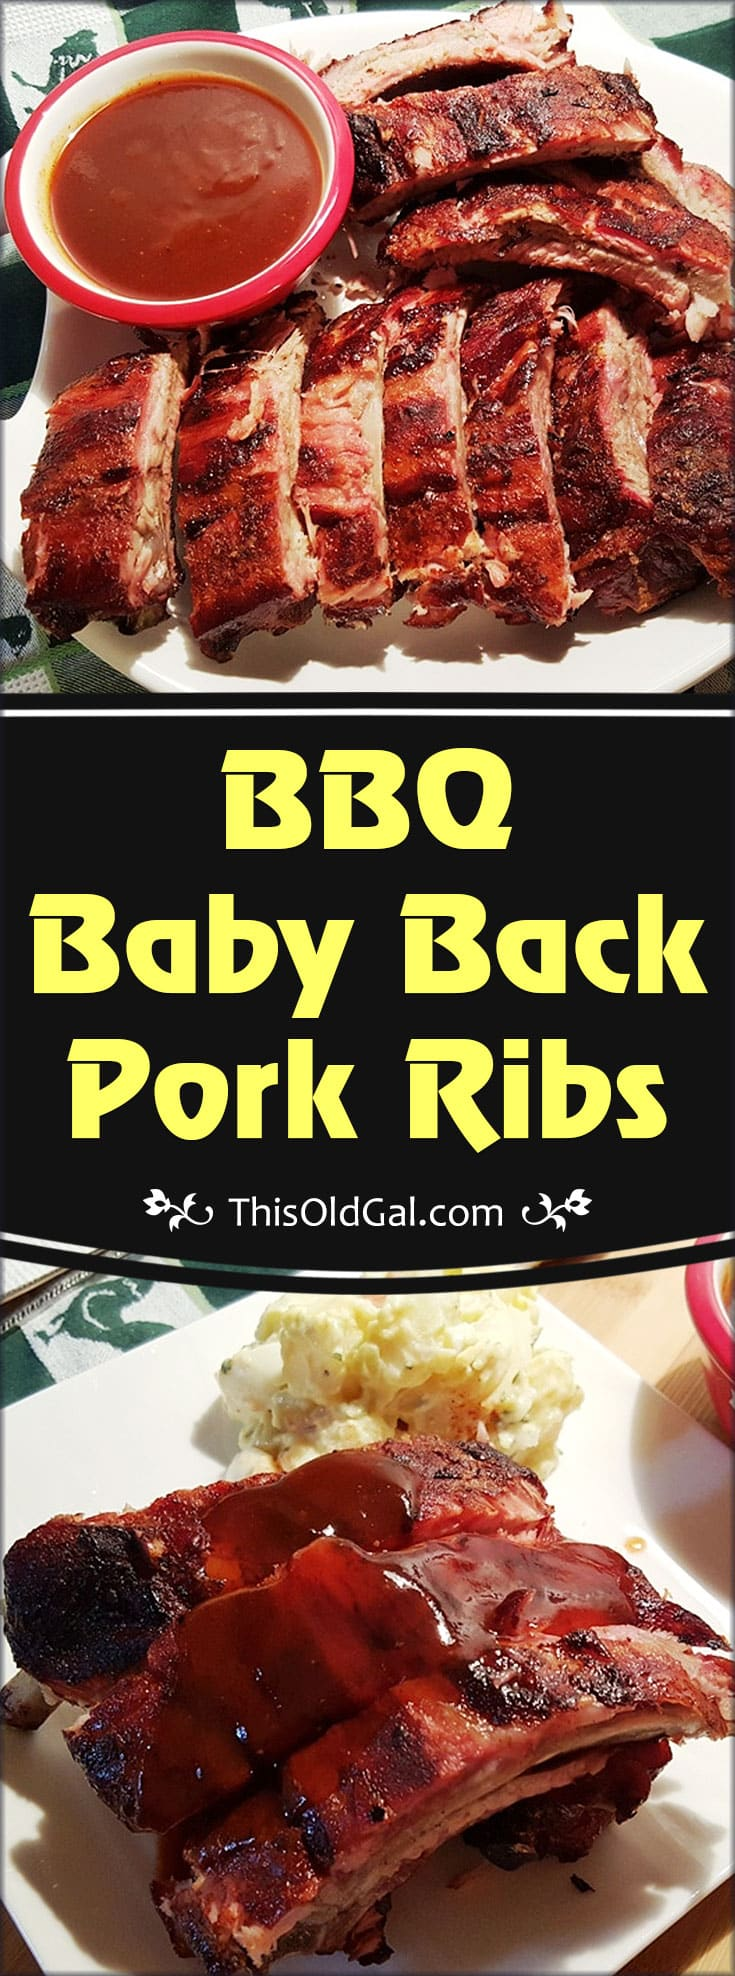 My Favorite BBQ Baby Back Pork Ribs Recipe